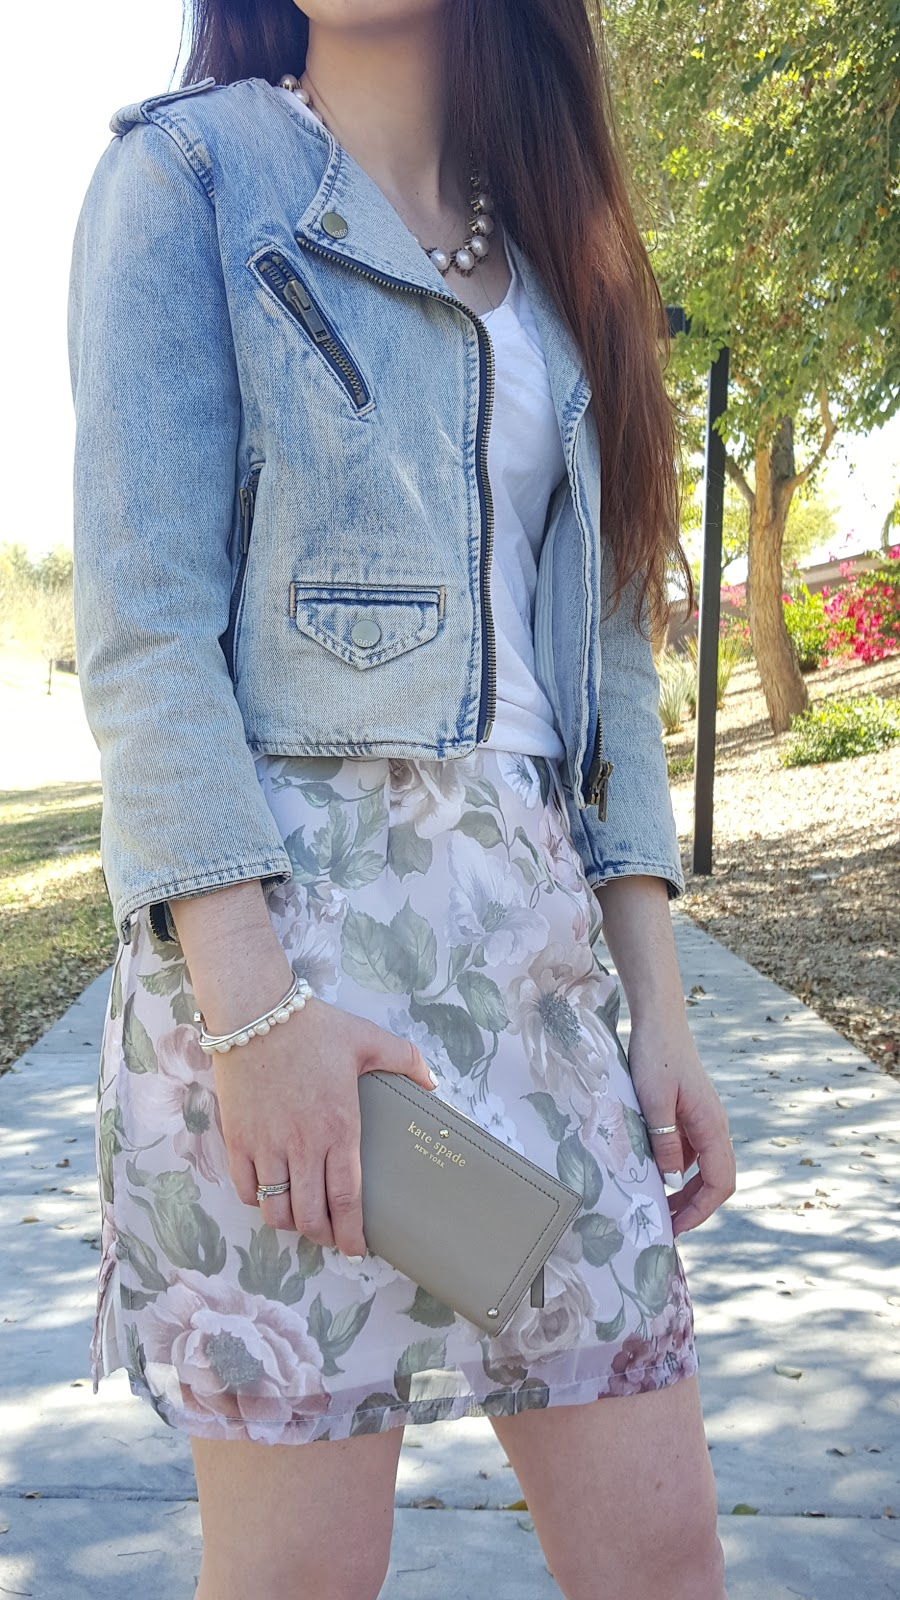 Spring outfit idea- pastel floral skirt and denim jacket